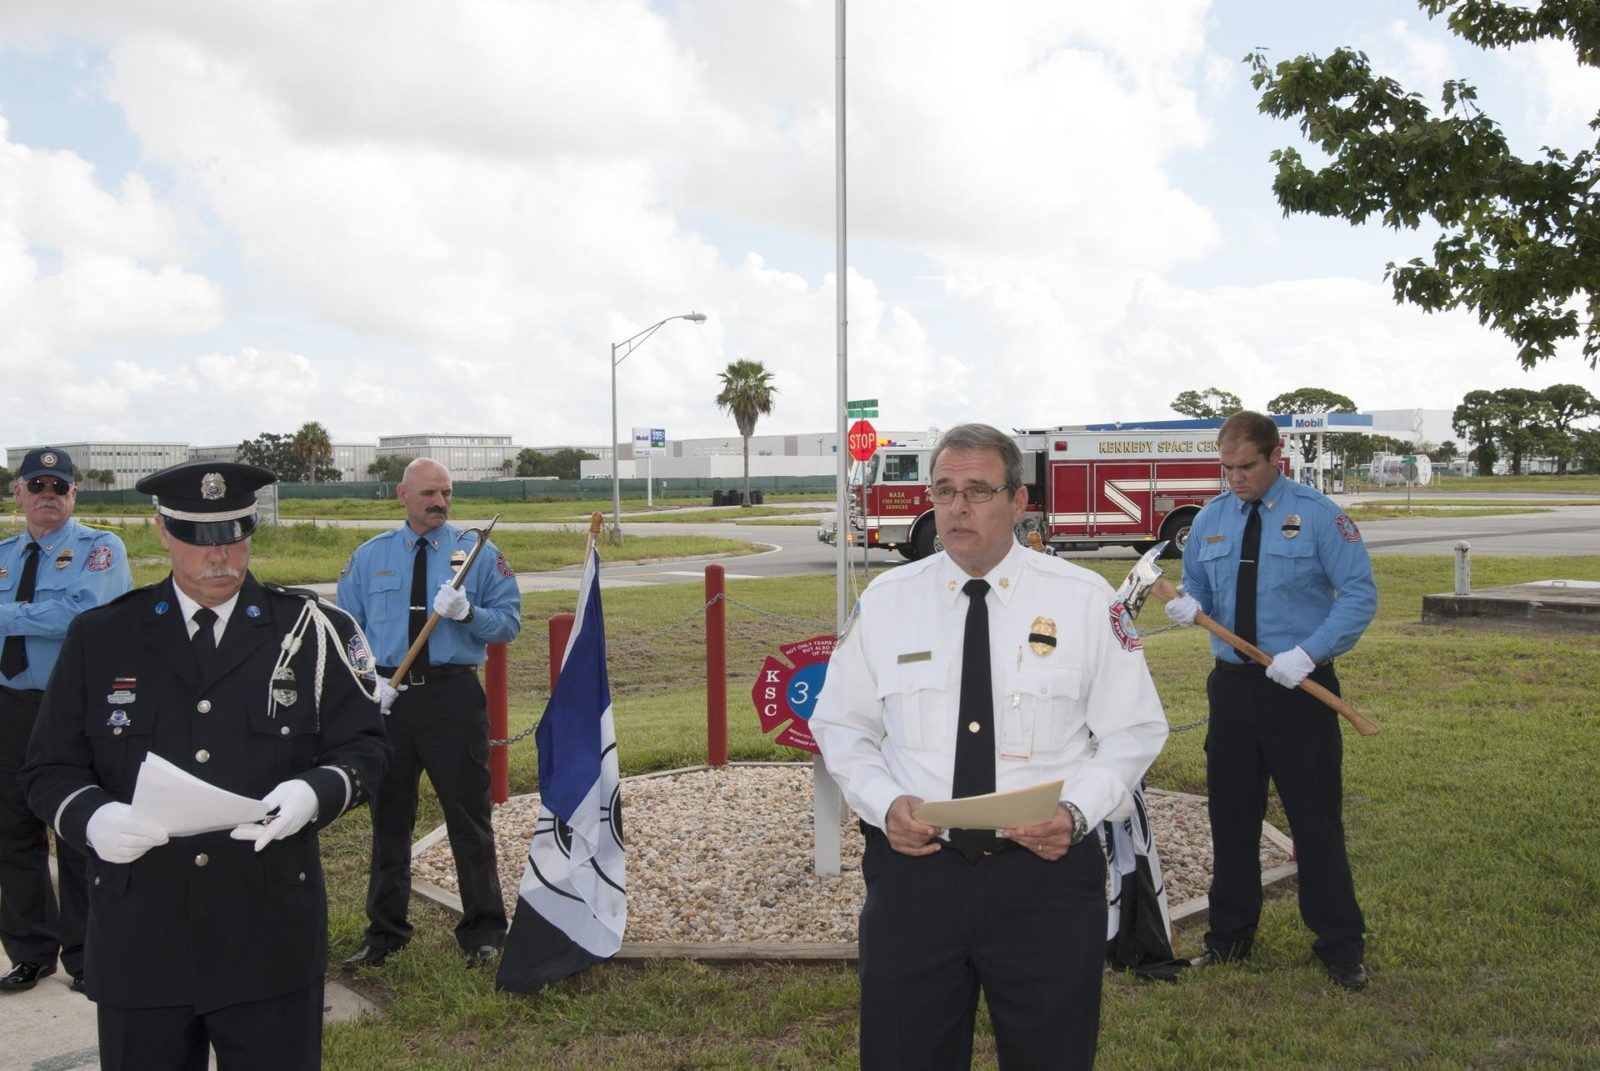 Cape Canaveral, Fla. – At Fire Station 1 at NASA's Kennedy Space Center in Florida, Kennedy Space Center Fire Chief Richard Anderson, center and Commander of the Honor Guard James Dumont, left, share emotional words at the 9/11 memorial during a ceremony held by Kennedy's Fire and Rescue personnel. Behind the pair are members of NASA's Protective Services. Kennedy Fire and Rescue Services commemorated the 13th anniversary of 9/11 with a ceremony that included a minute of silence at 10:28 a.m., which was the moment of collapse of the north tower of the World Trade Center. Photo credit: Jim Grossmann KSC-2014-3802